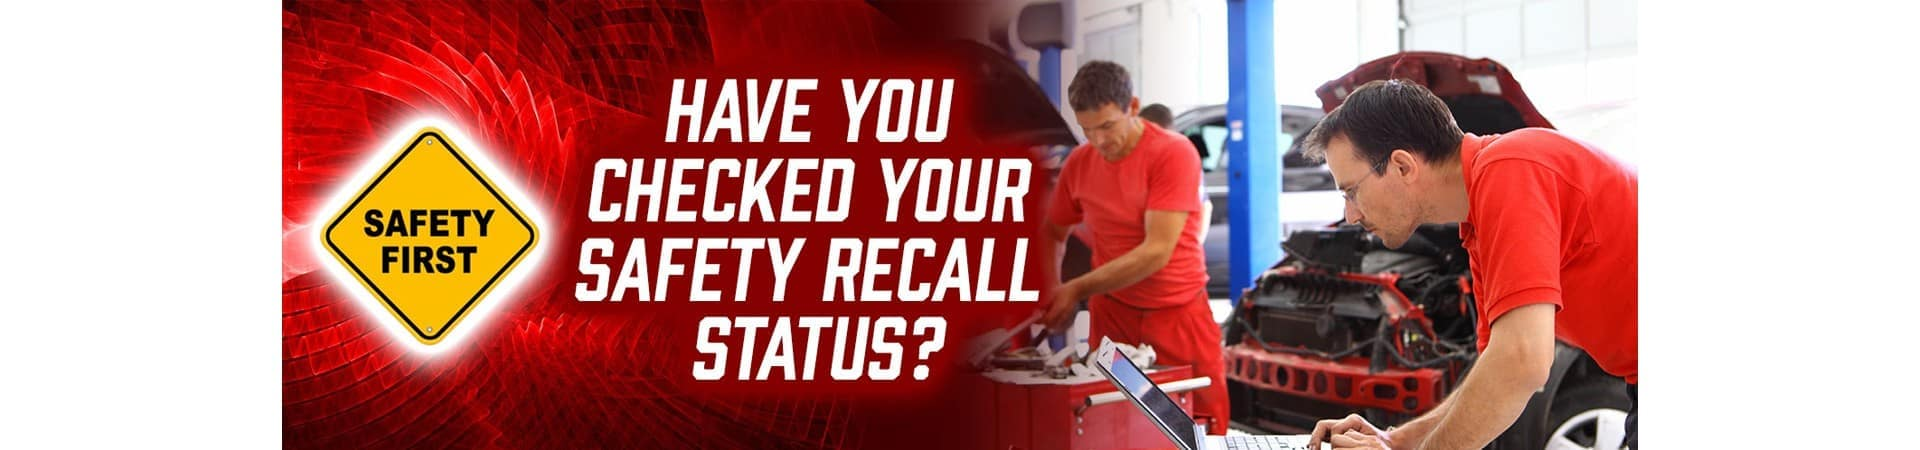 Safety Recall Check